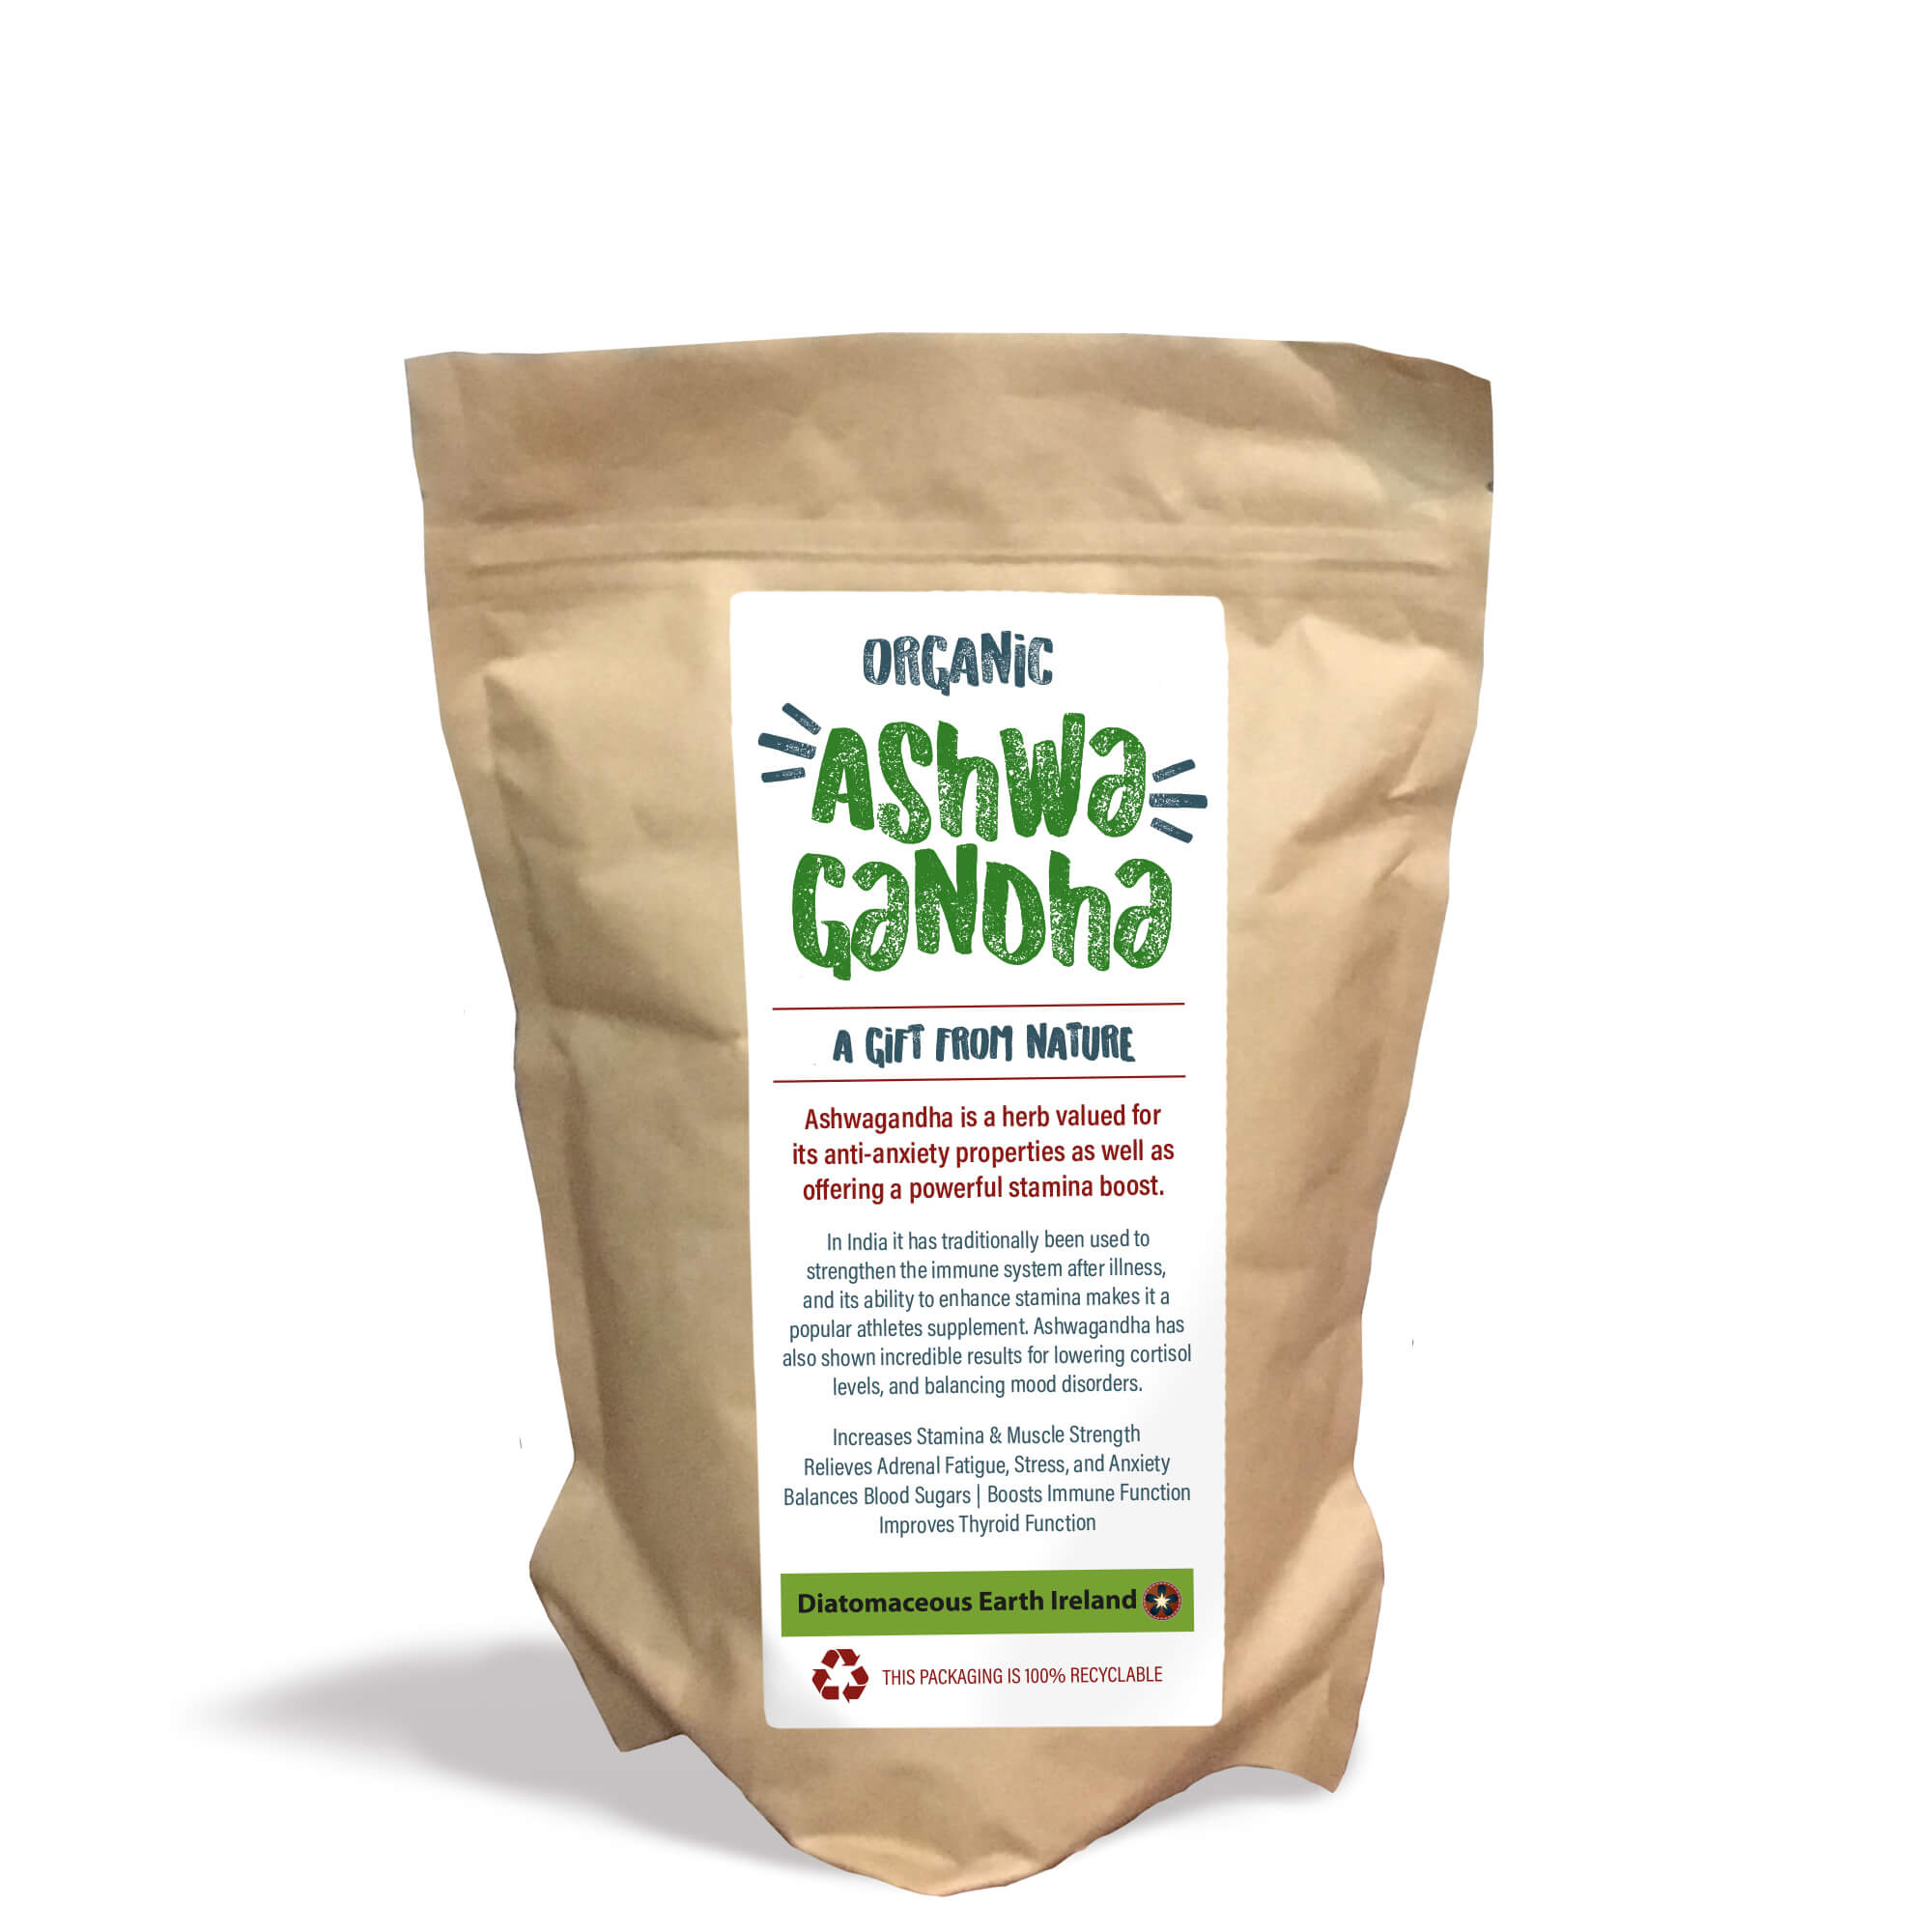 bag of ashwagandha herb